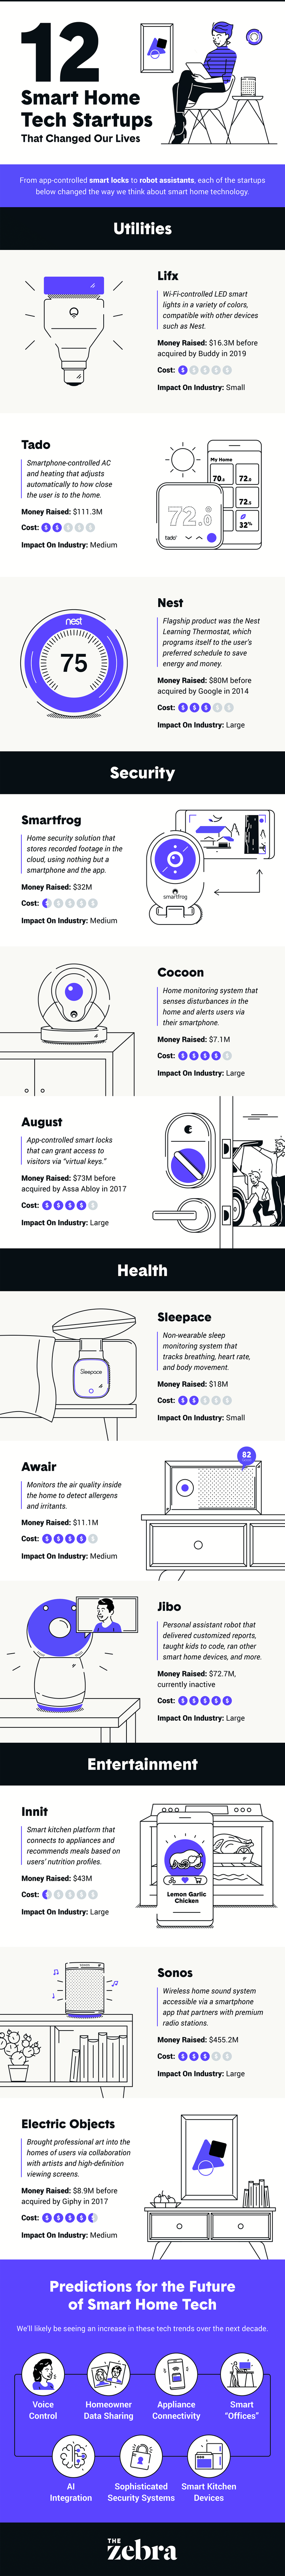 12 Smart Home Tech Startups That Change Our Lives #infographic